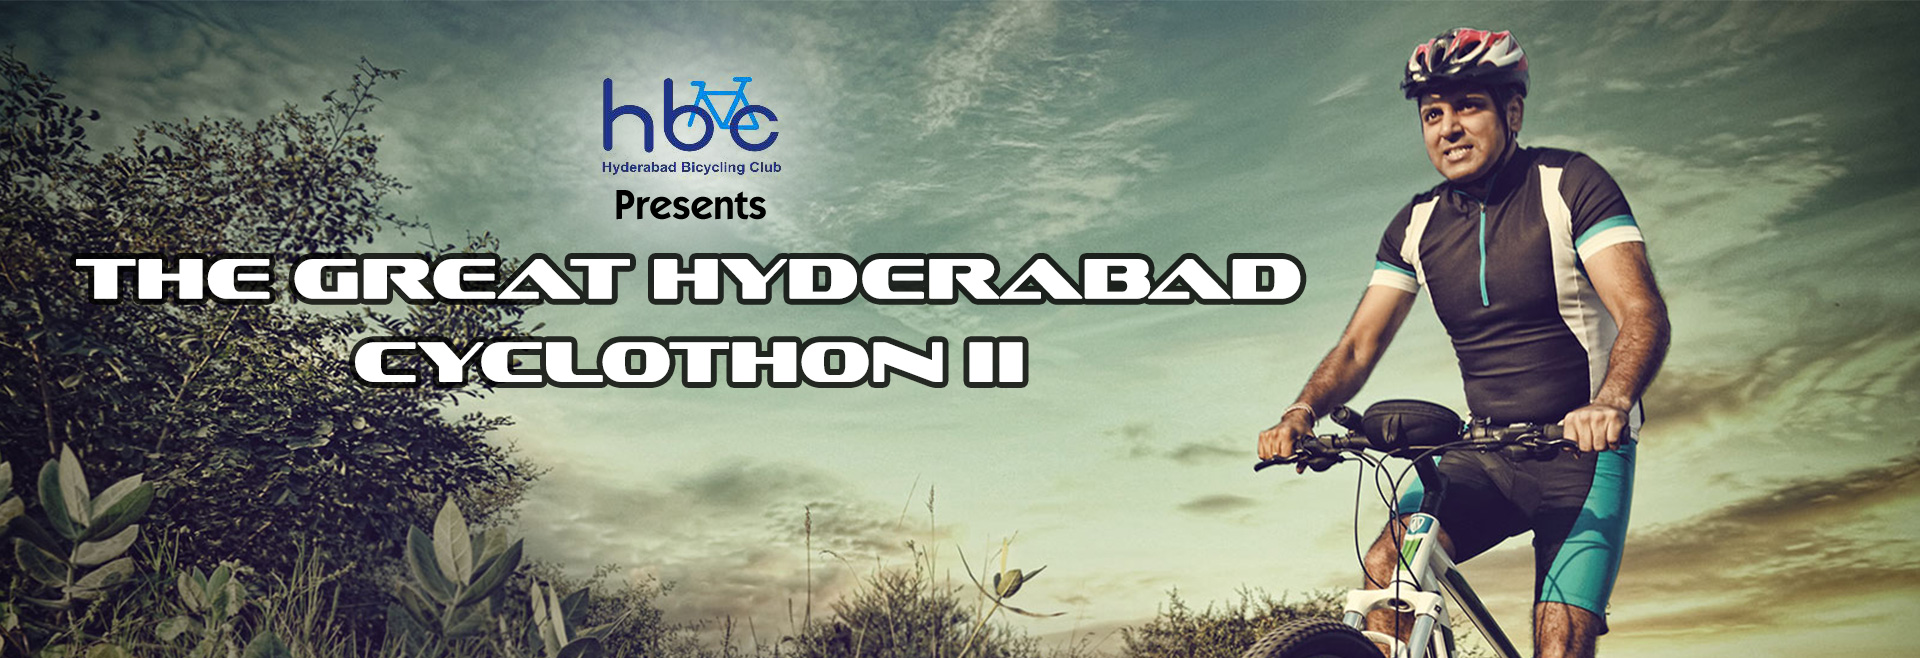 The Great Hyderabad Cyclothon 2